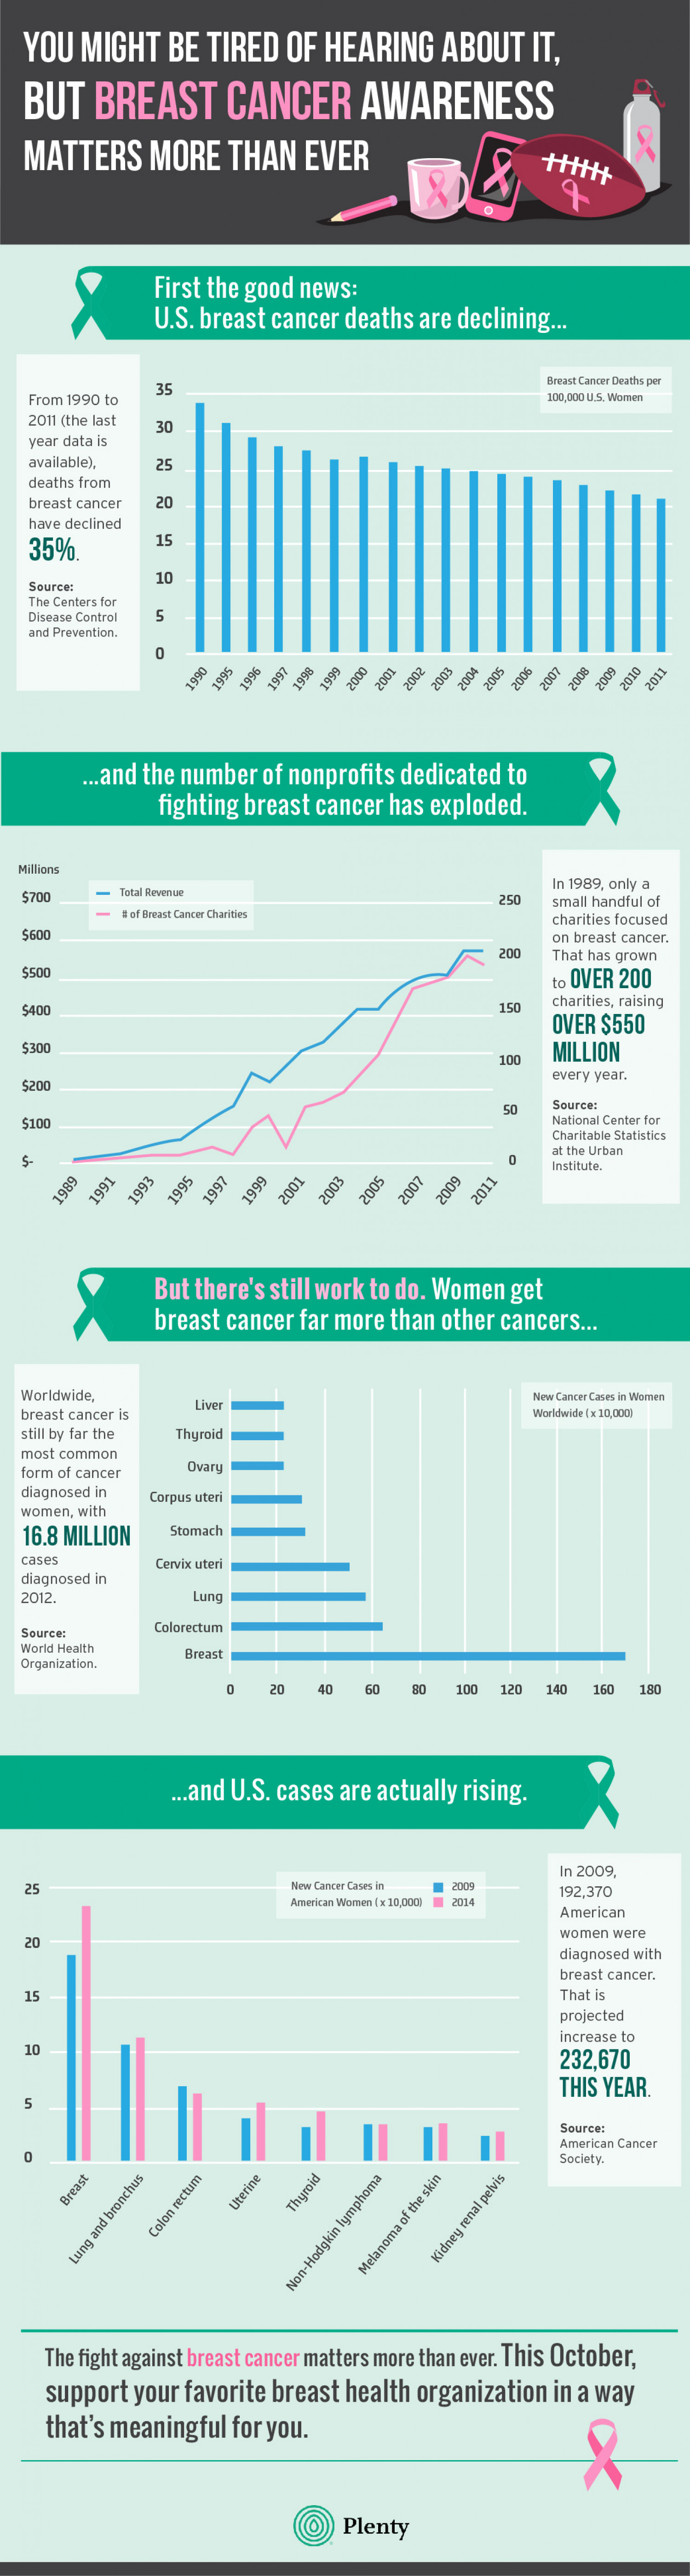 Why Breast Cancer Awareness Matters More Than Ever Infographic